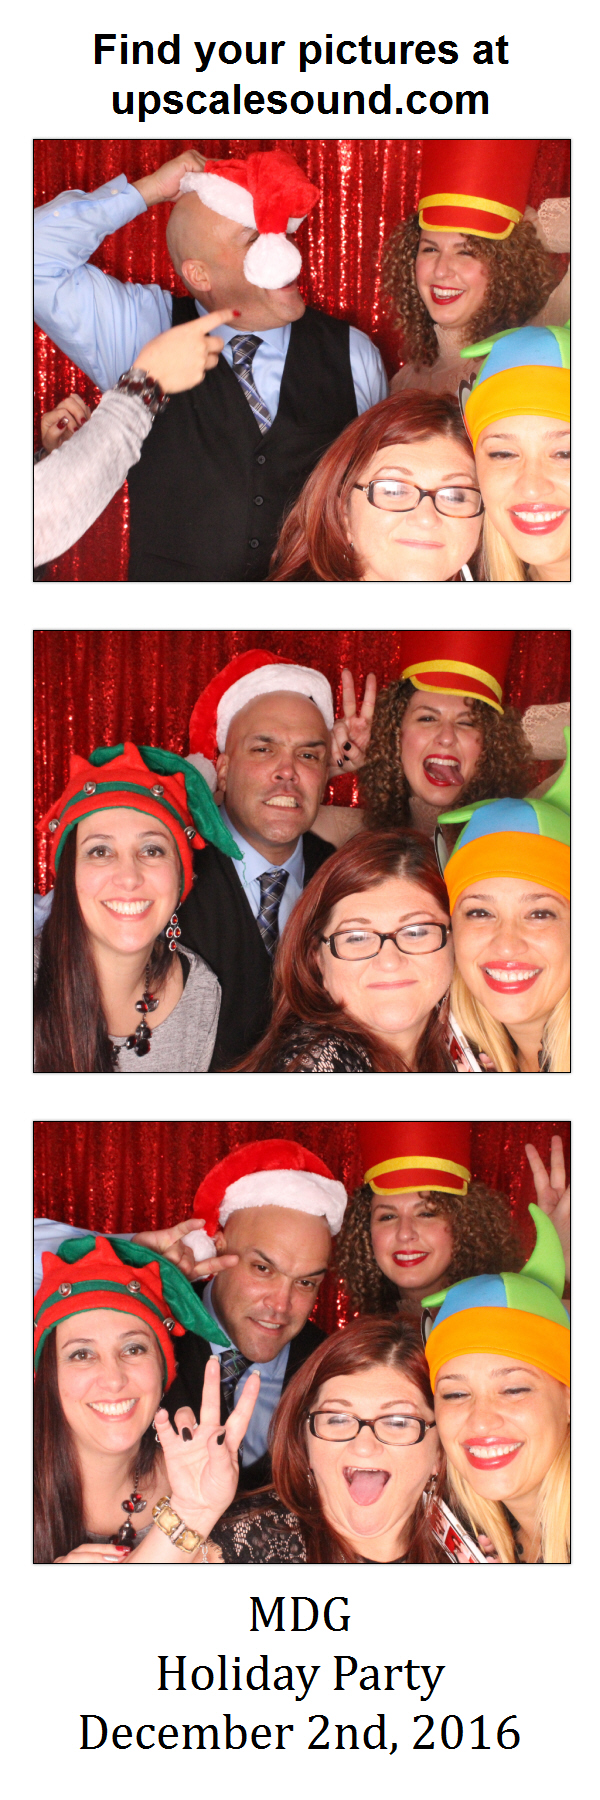 MDG Holiday Party